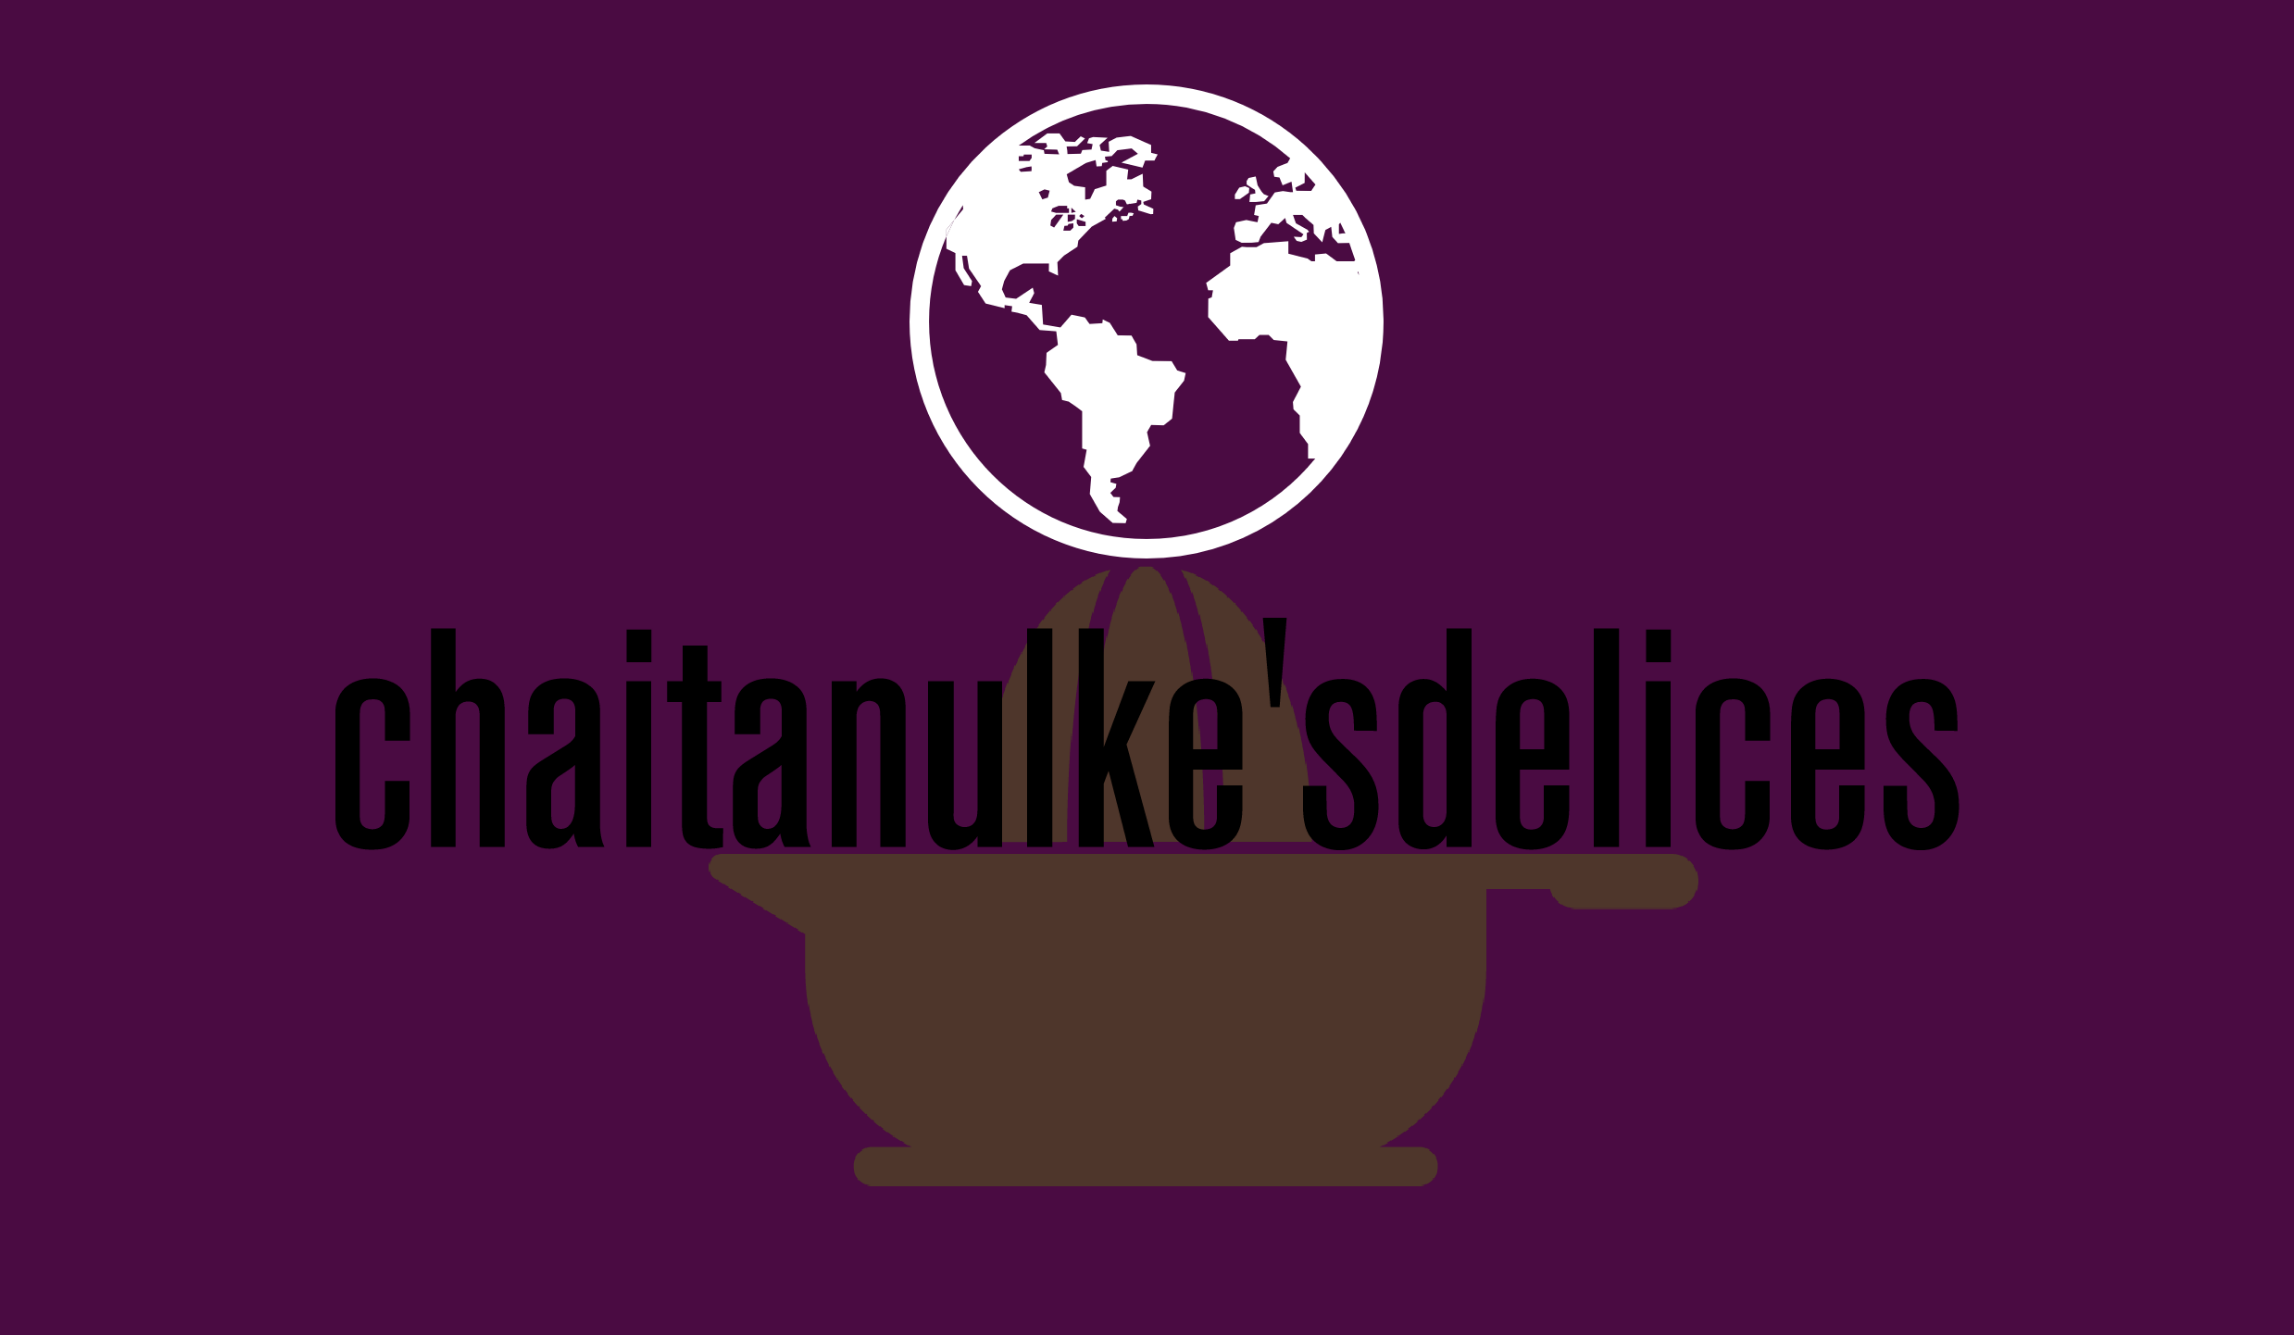 Chaitanulke's delices